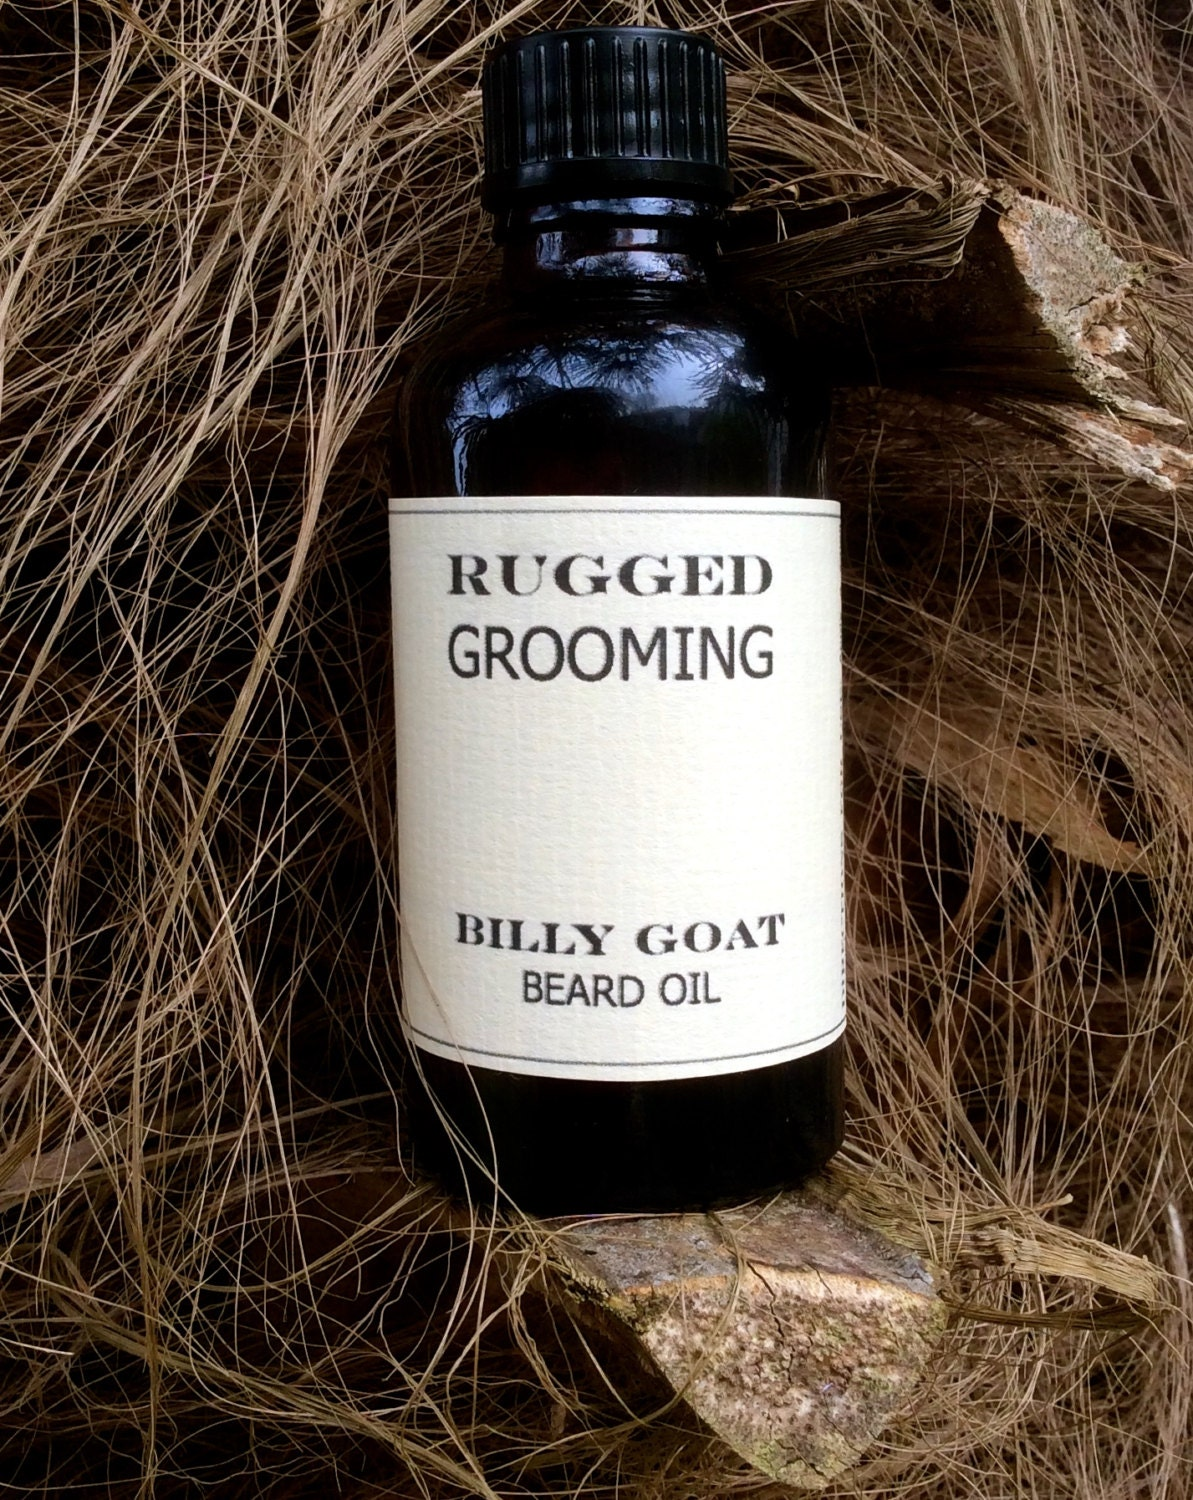 billy goat beard oil rugged grooming by ruggedgrooming on etsy. Black Bedroom Furniture Sets. Home Design Ideas